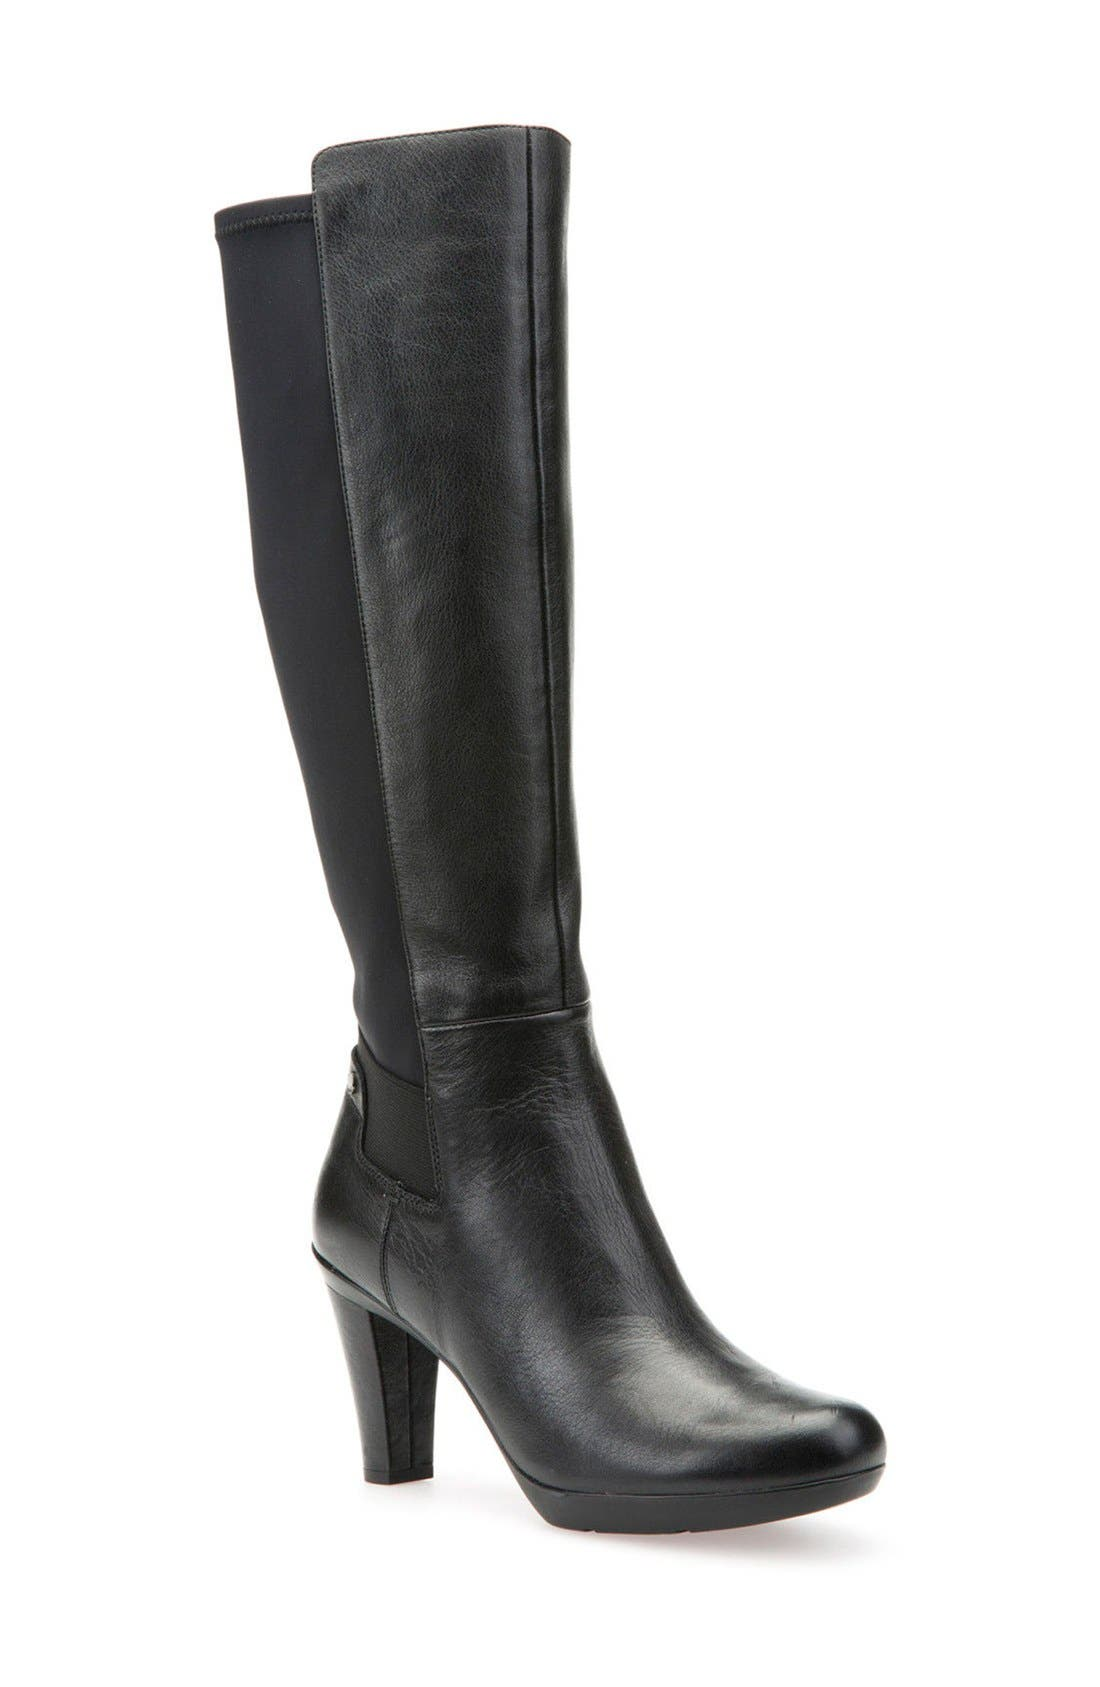 Geox Inspirations 19 Tall Boot (Women) (Narrow Calf)